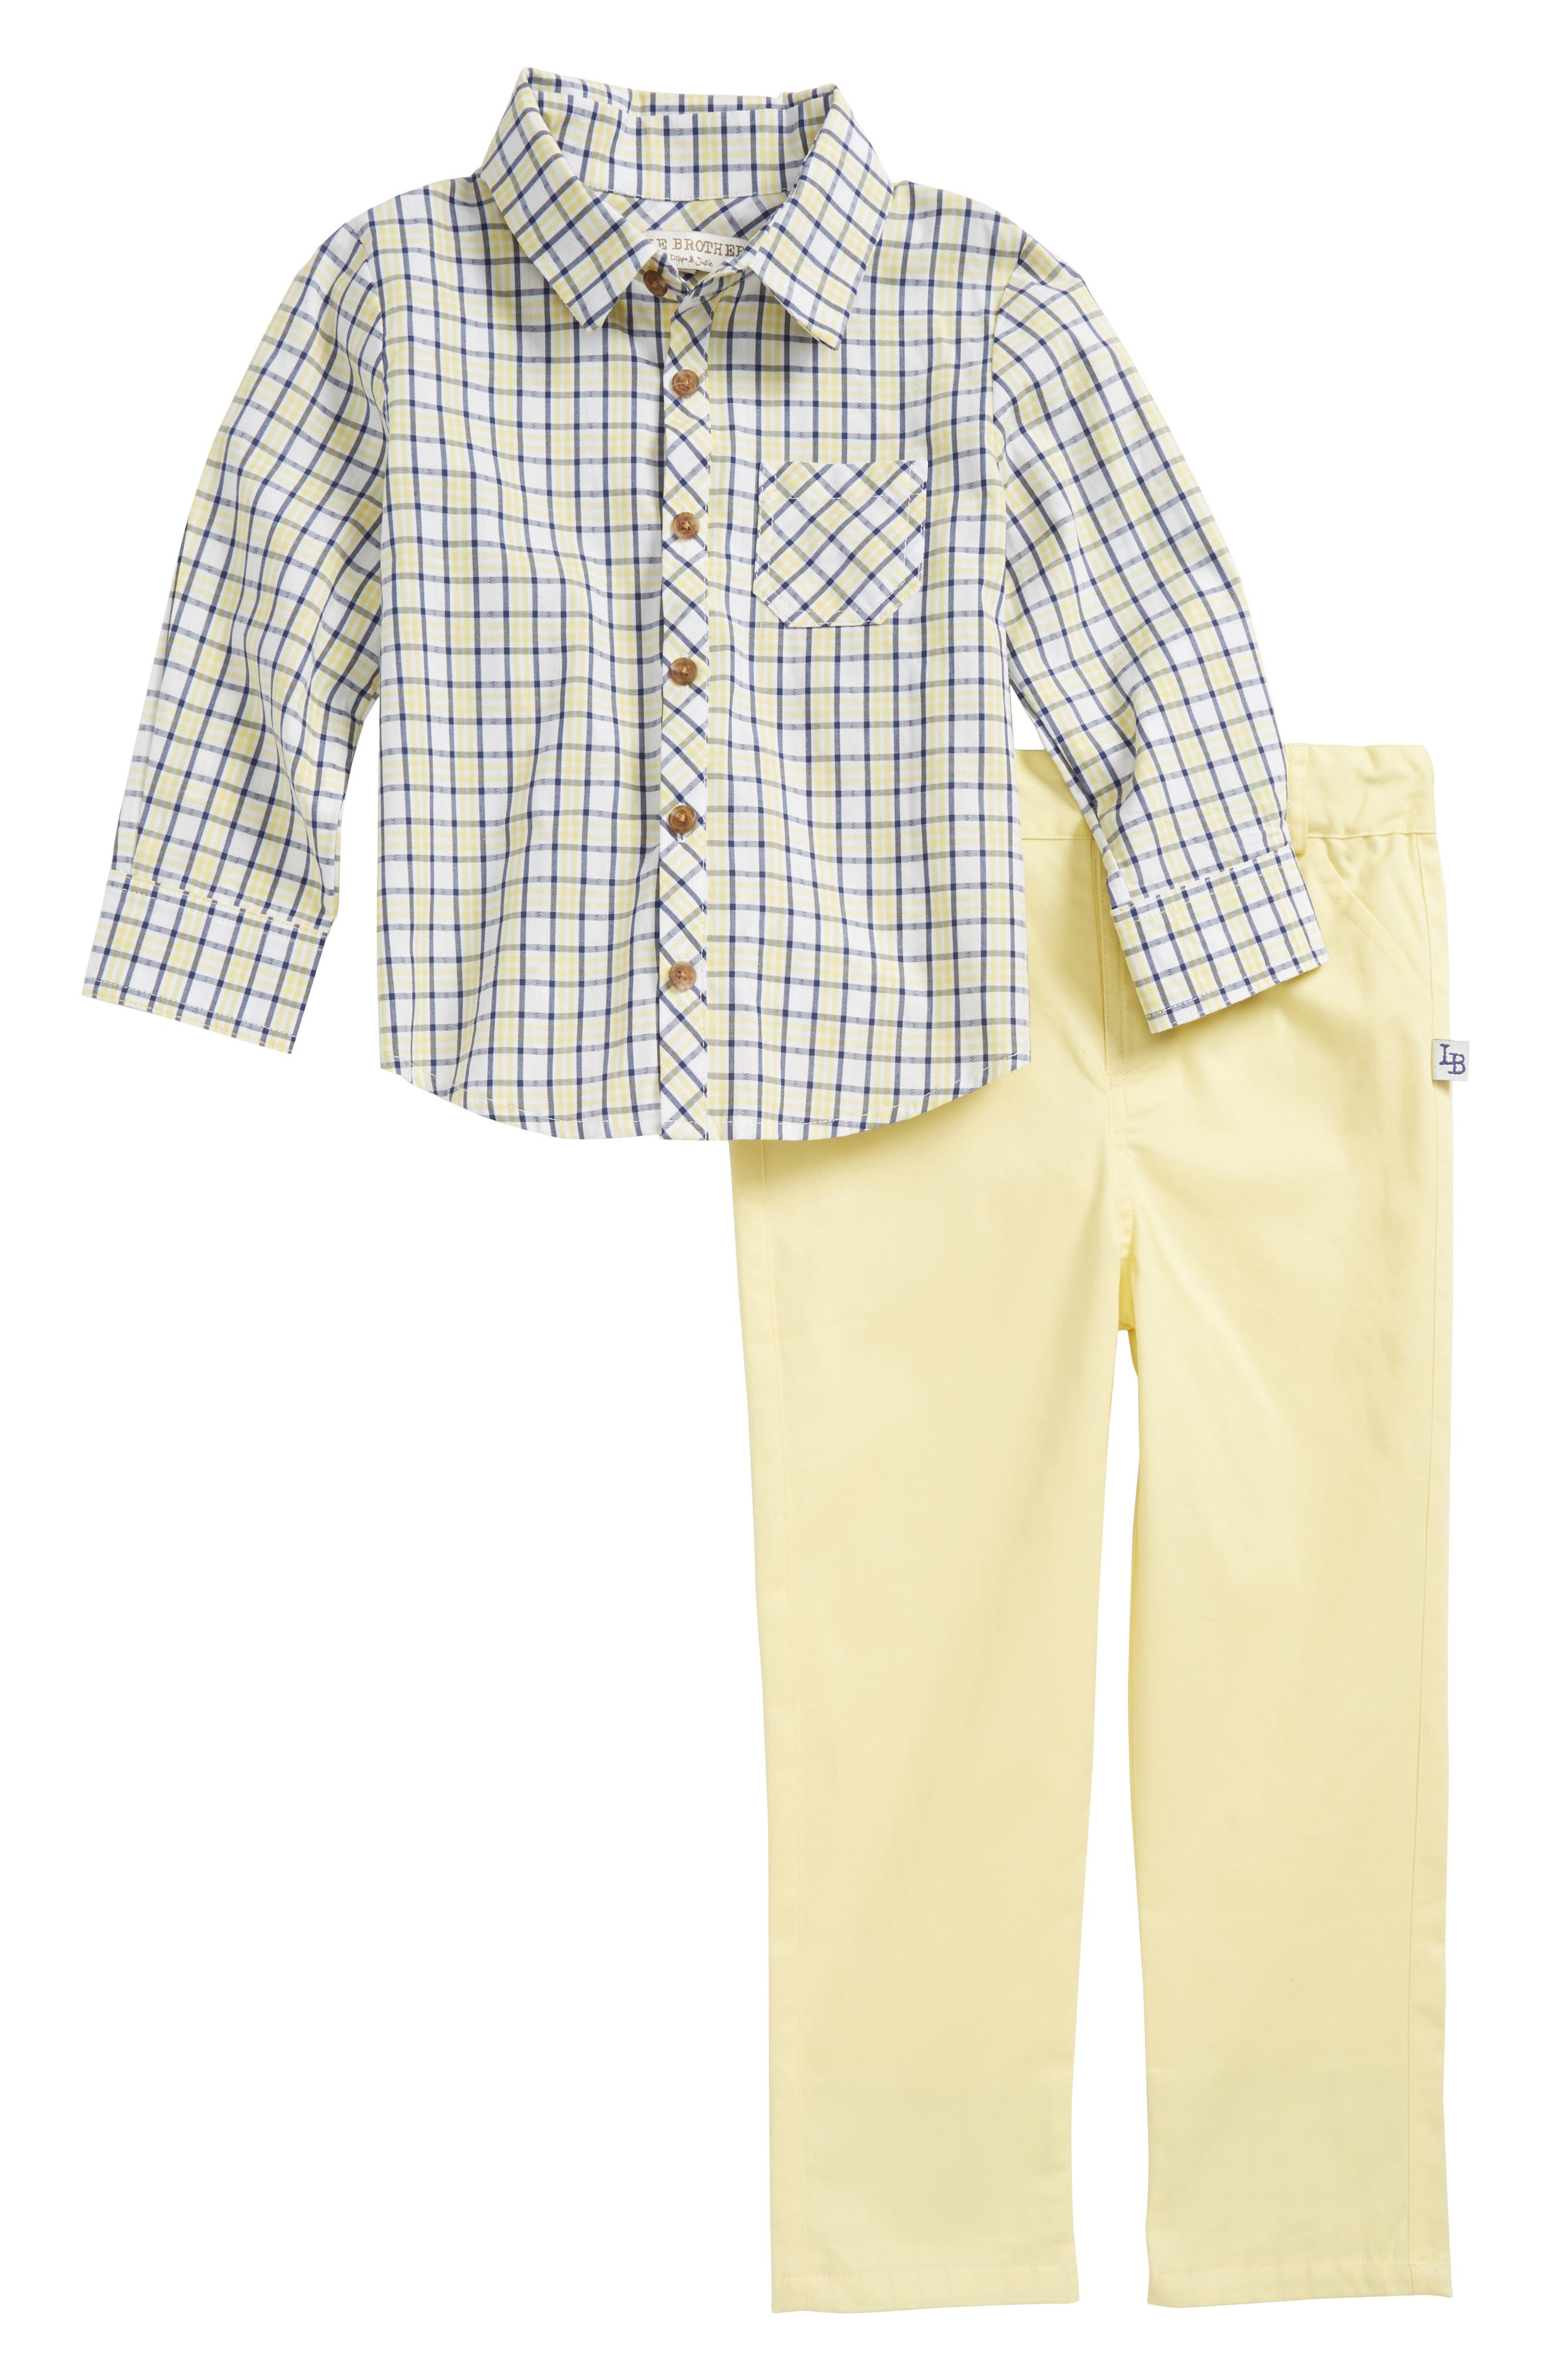 Little Brother by Pippa & Julie Plaid Top & Pants Set (Toddler Boys)